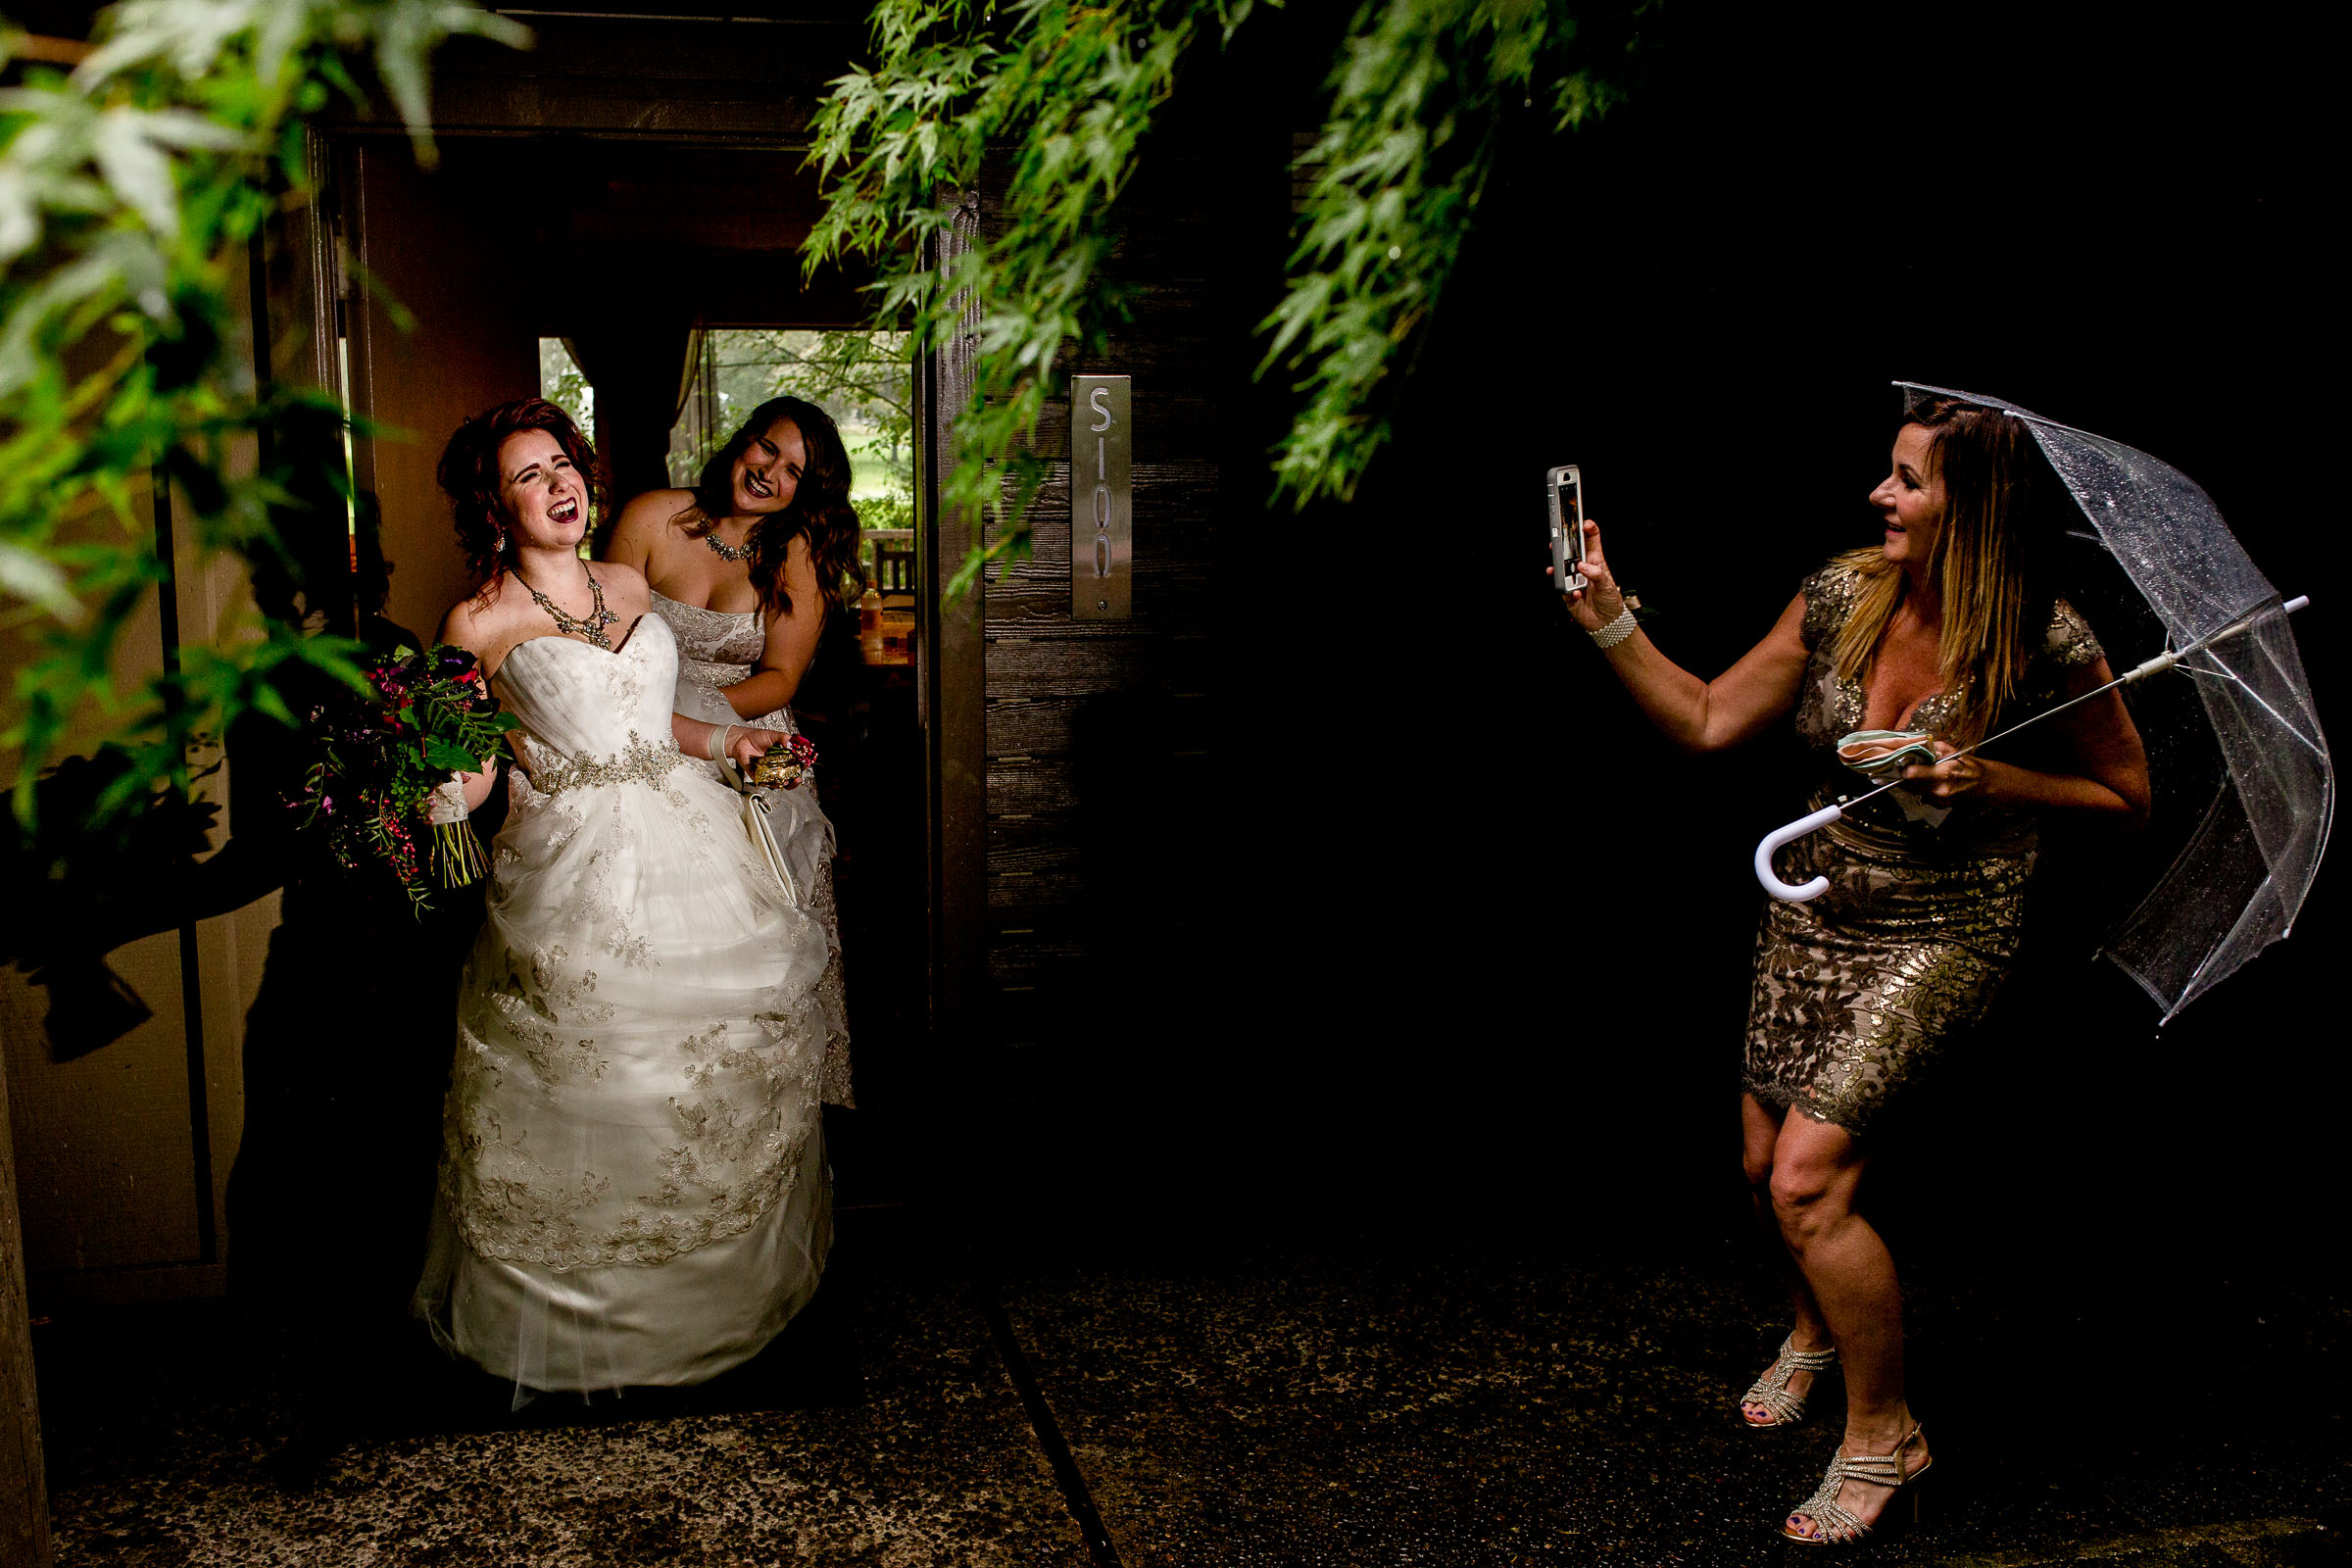 Bride on her way to her Resort at the Mountain wedding ceremony in Oregon near Mt Hood.